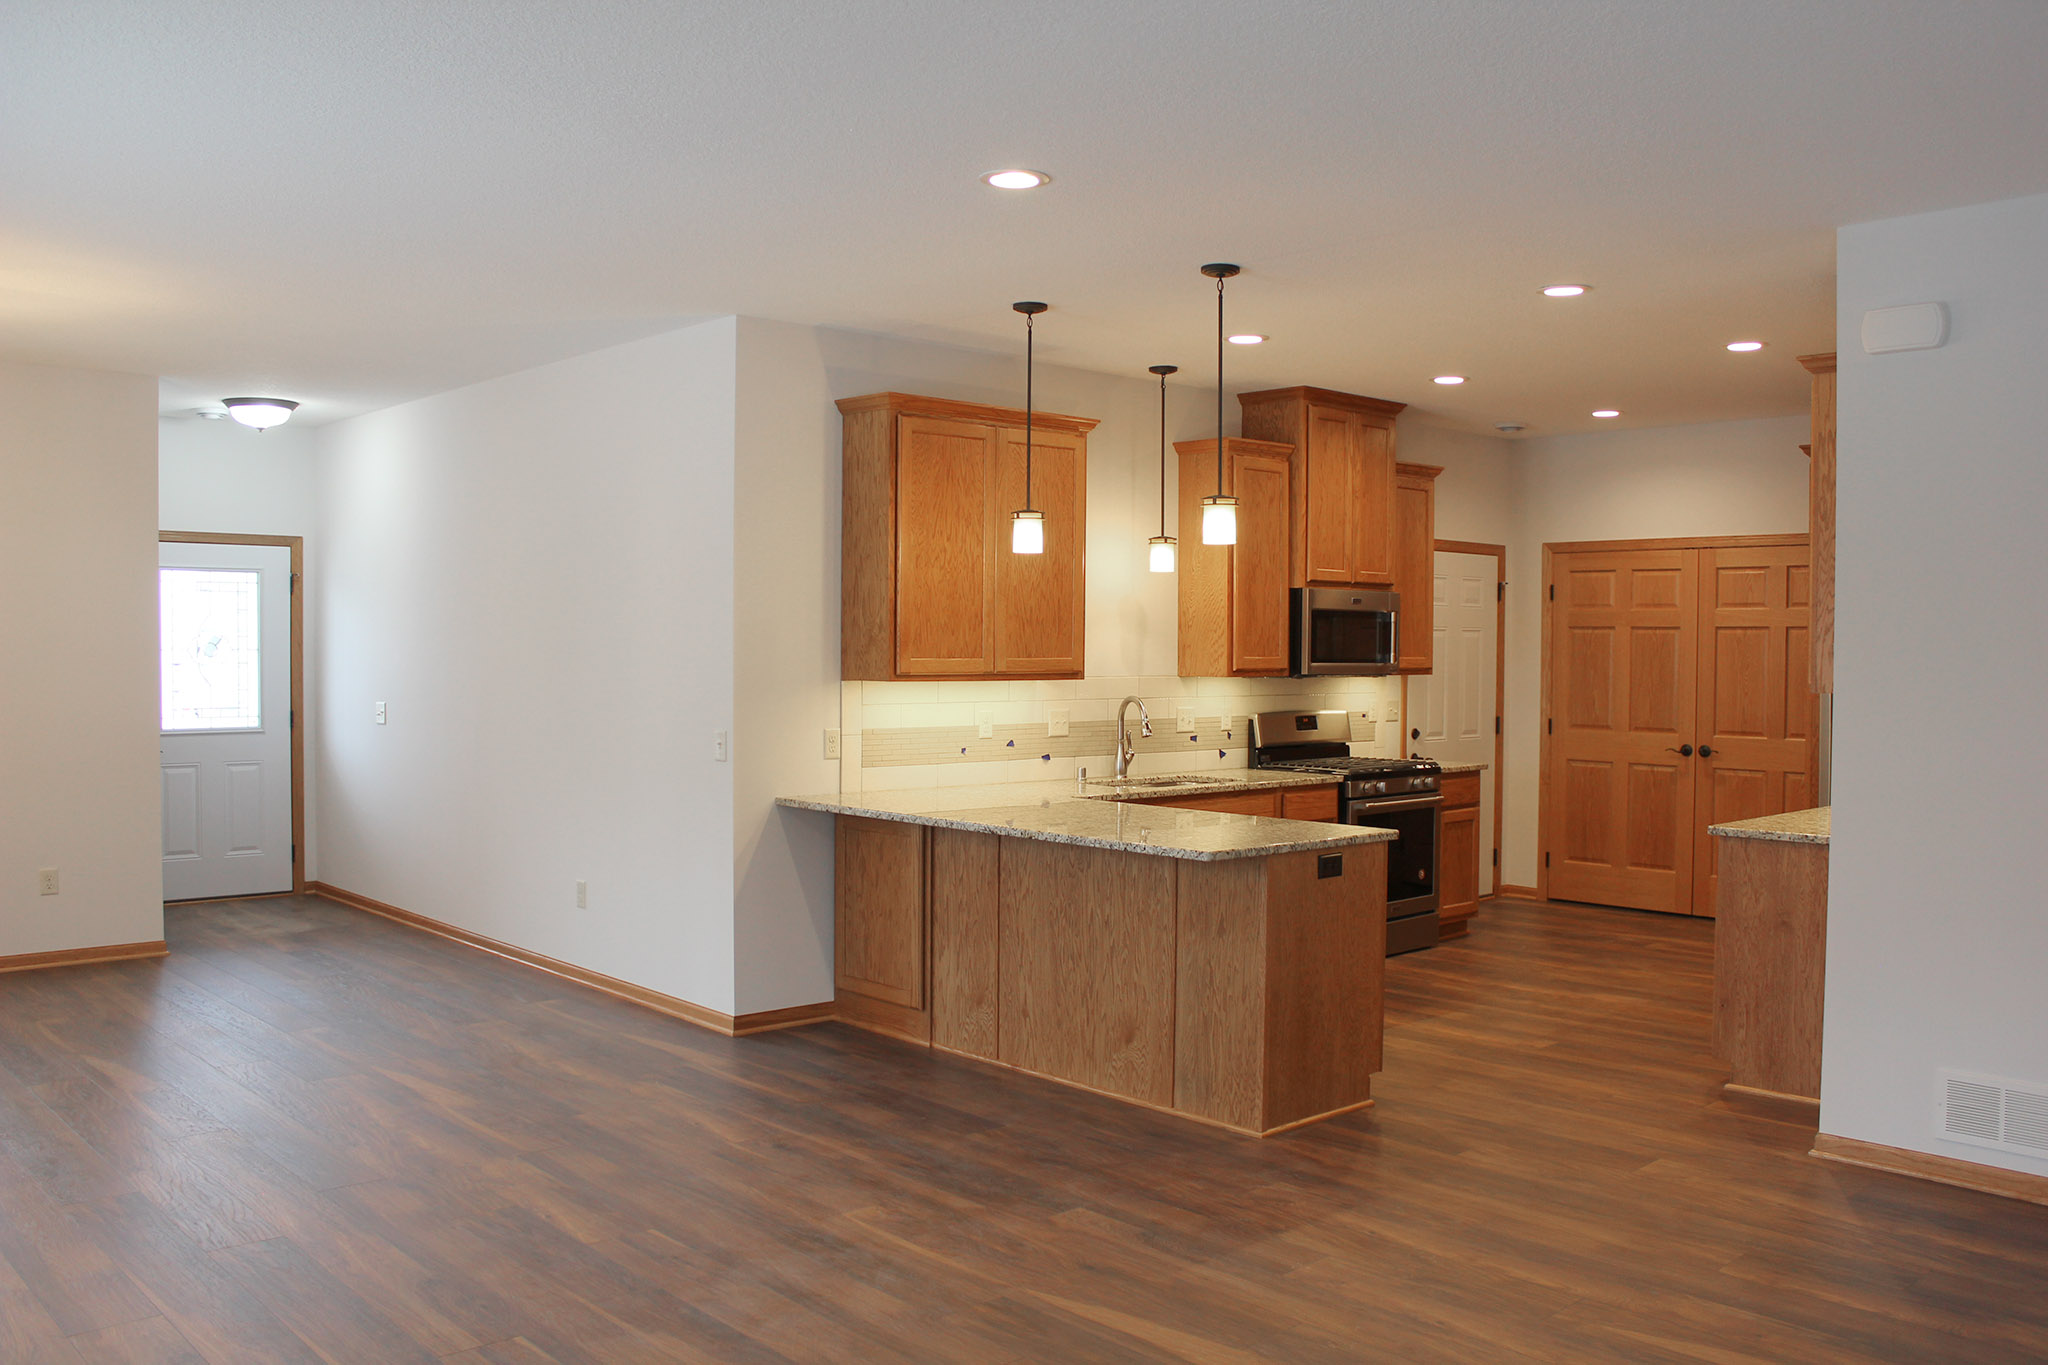 One level townhome with open floorplan with kitchen, dining room and entry